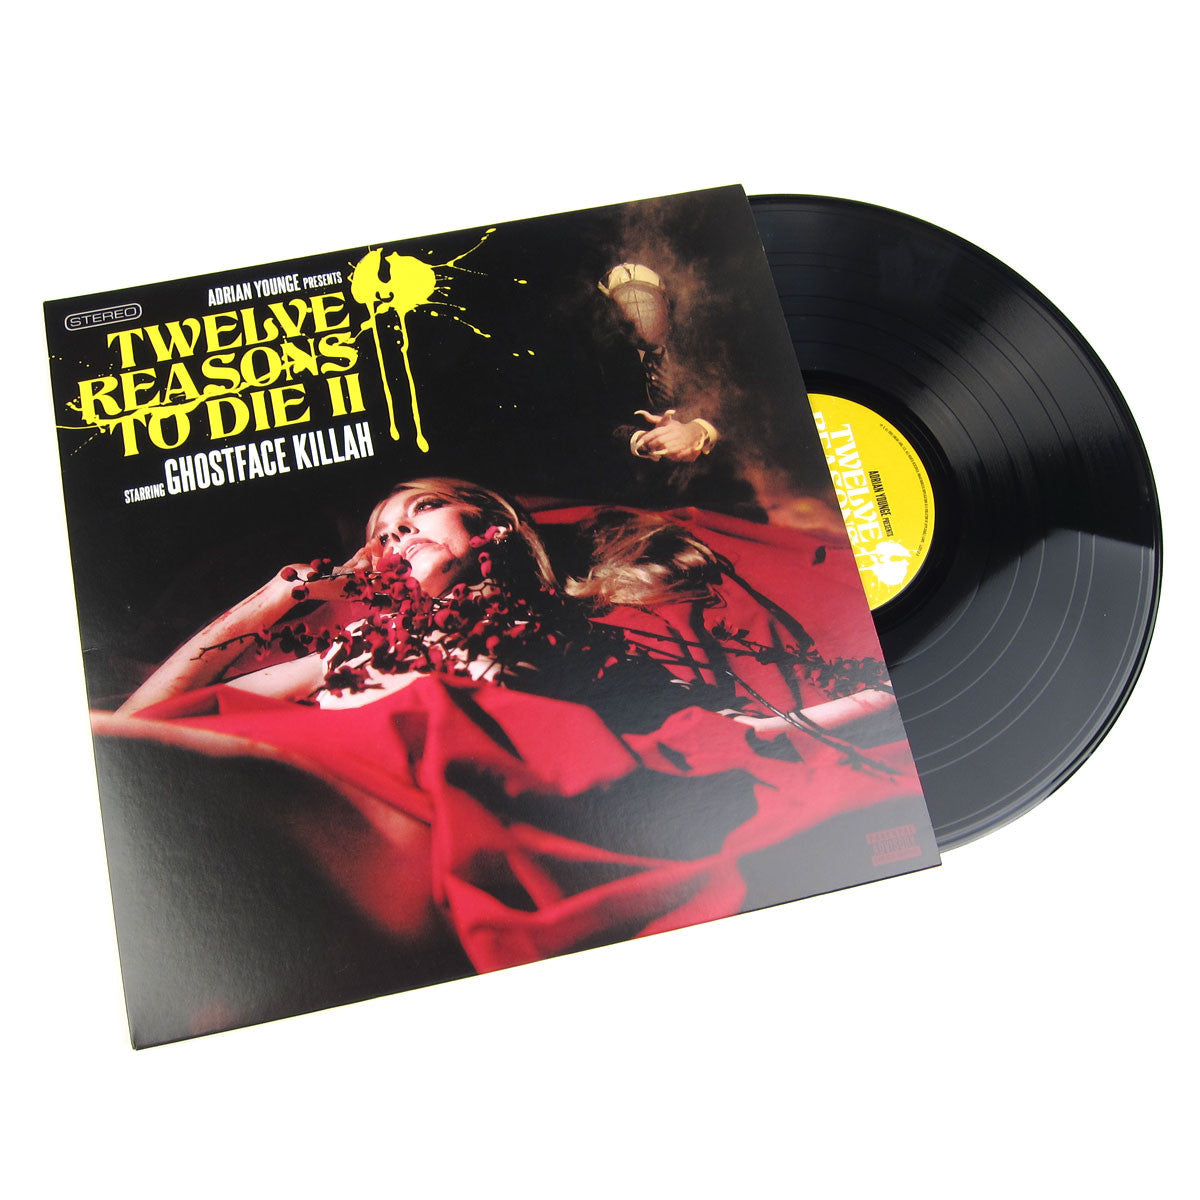 Ghostface Killah & Adrian Younge: Twelve Reasons To Die II Vinyl LP